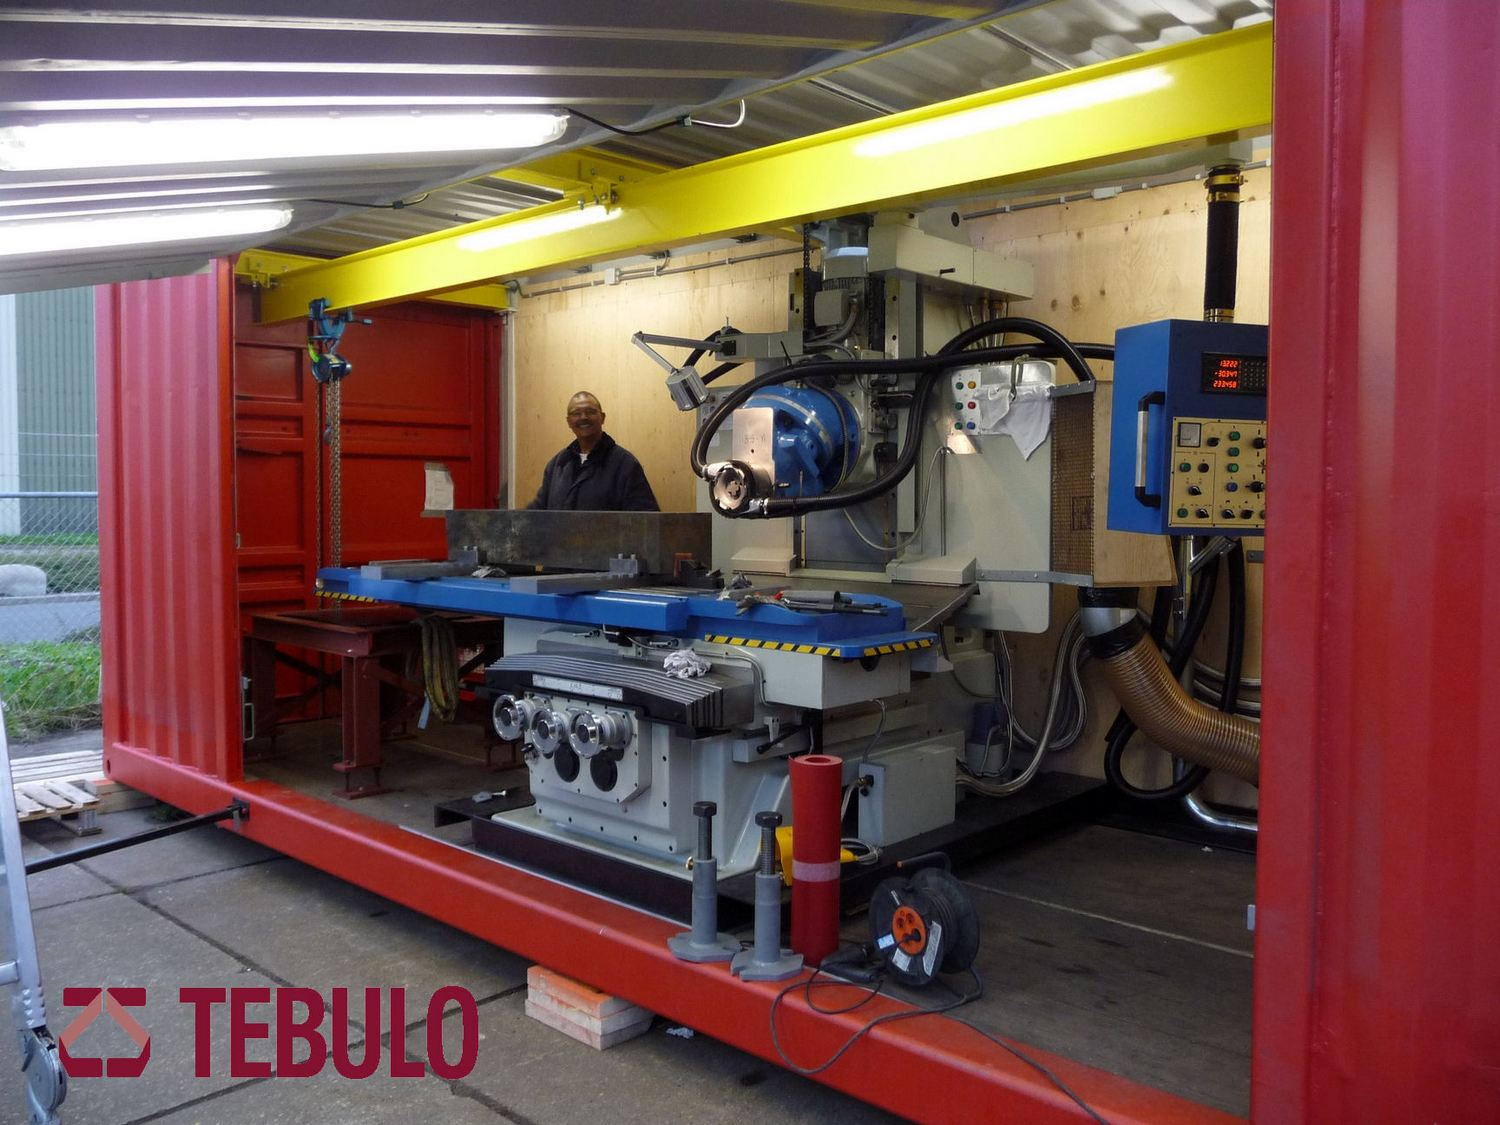 Tebulo machinebouw